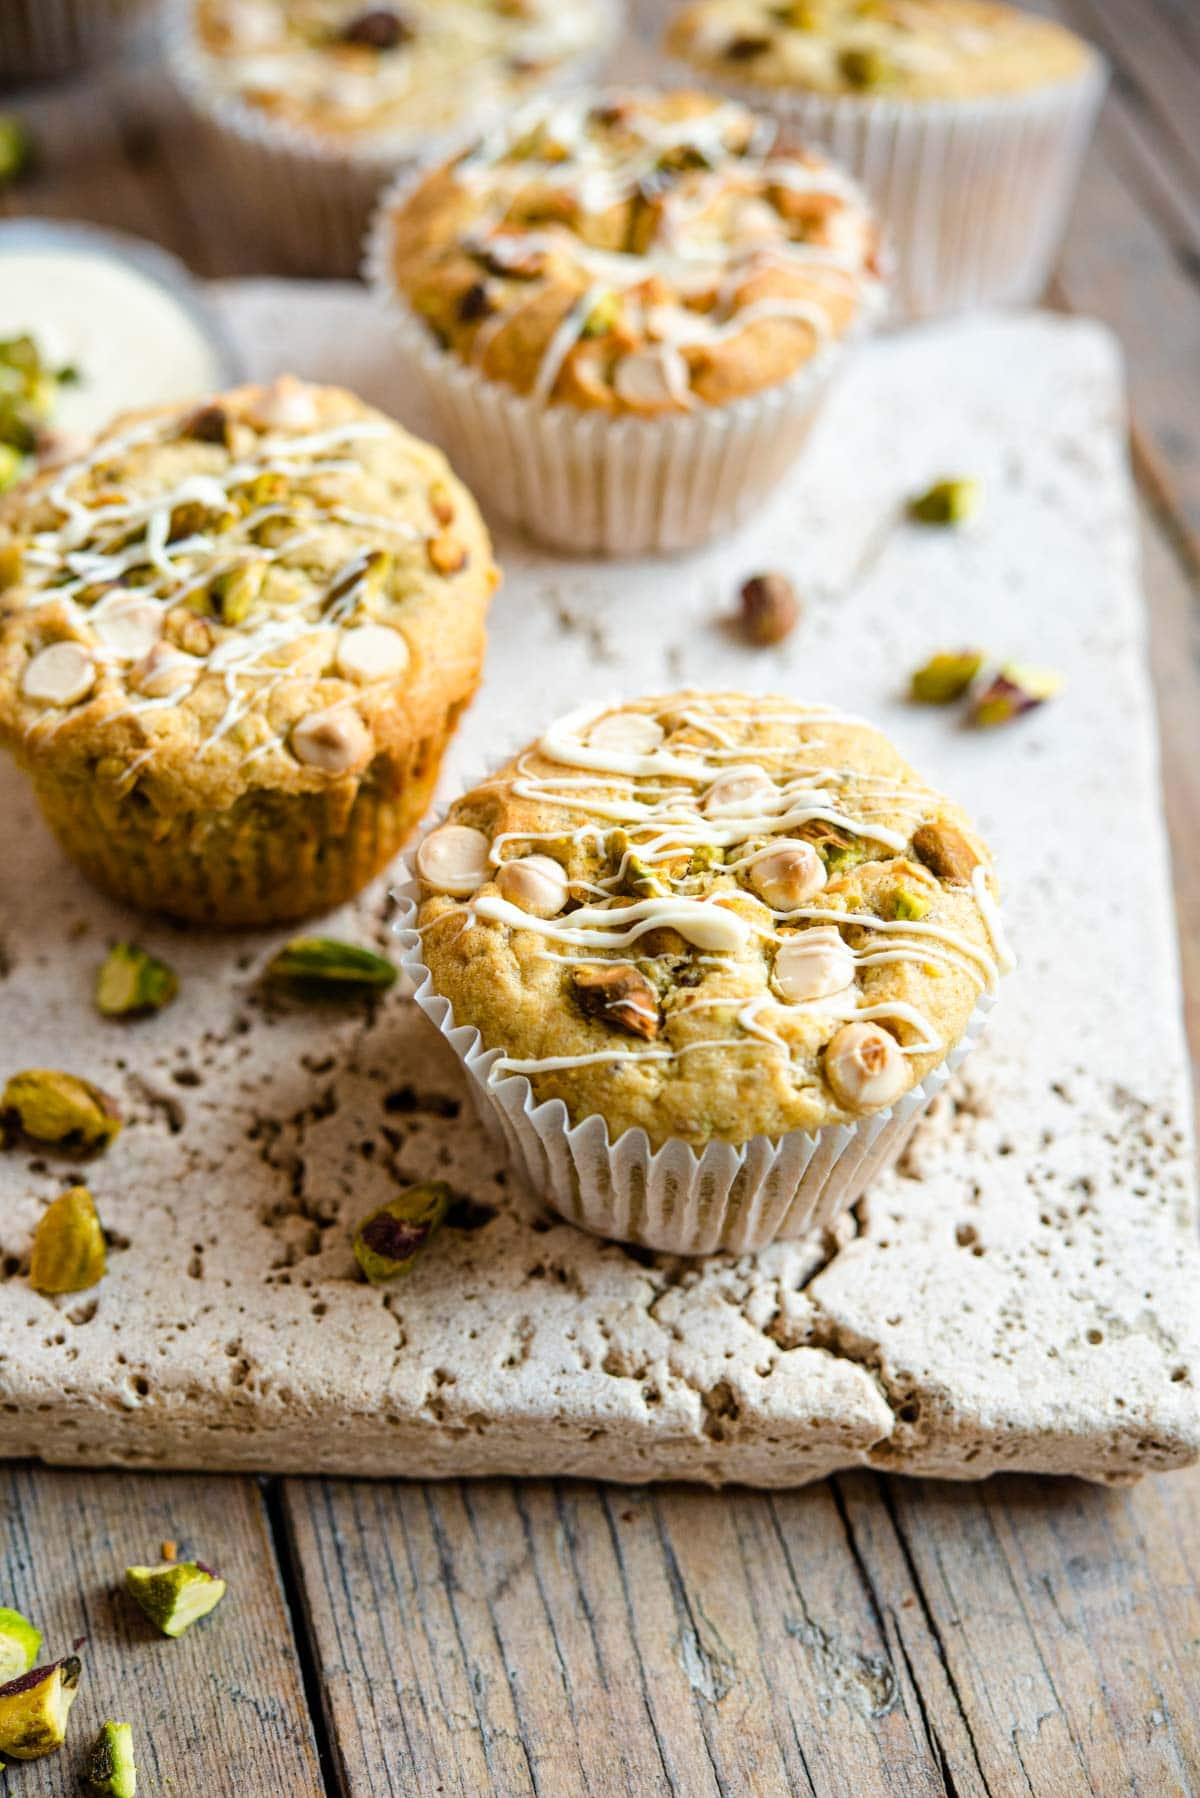 A close up of pistachio muffins